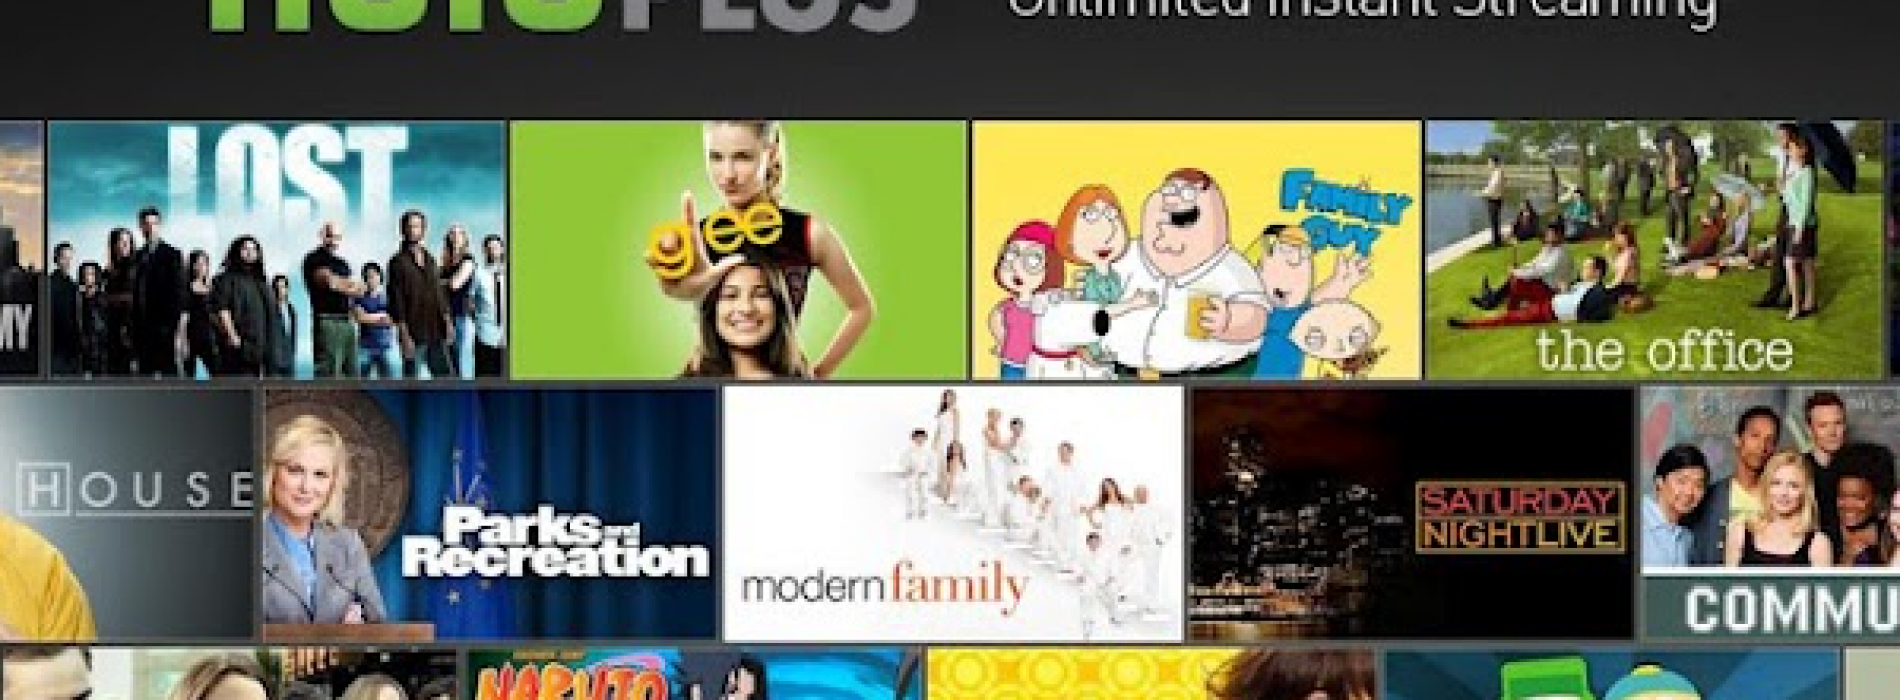 Hulu Plus gains new Android devices, improved 7-inch tablet experience